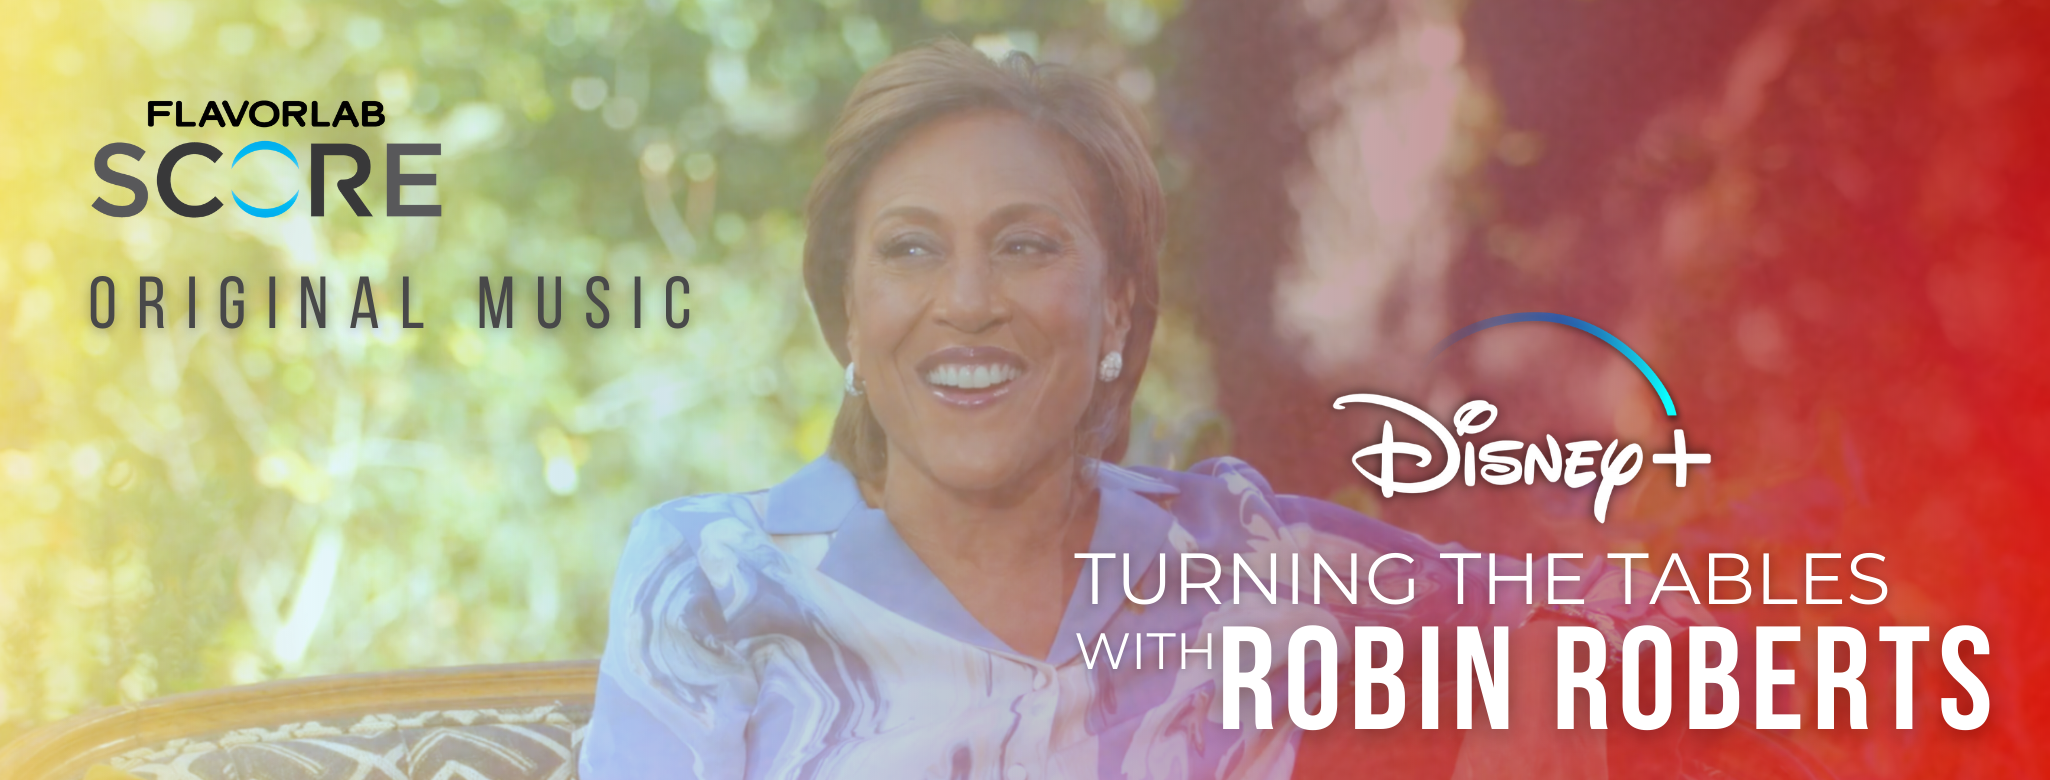 """Still of Robin Roberts smiling on an outdoor couch on Turning Tables with Robin Roberts on Disney Plus. The image is overlaid with red and yellow gradient with the words """"Flavorlab Score Original Music"""" in the top left and """"Disney+ Turning The Tables with Robin Roberts"""" in the bottom right. Flavorlab Score provided original score for the series available July 28th 2021."""